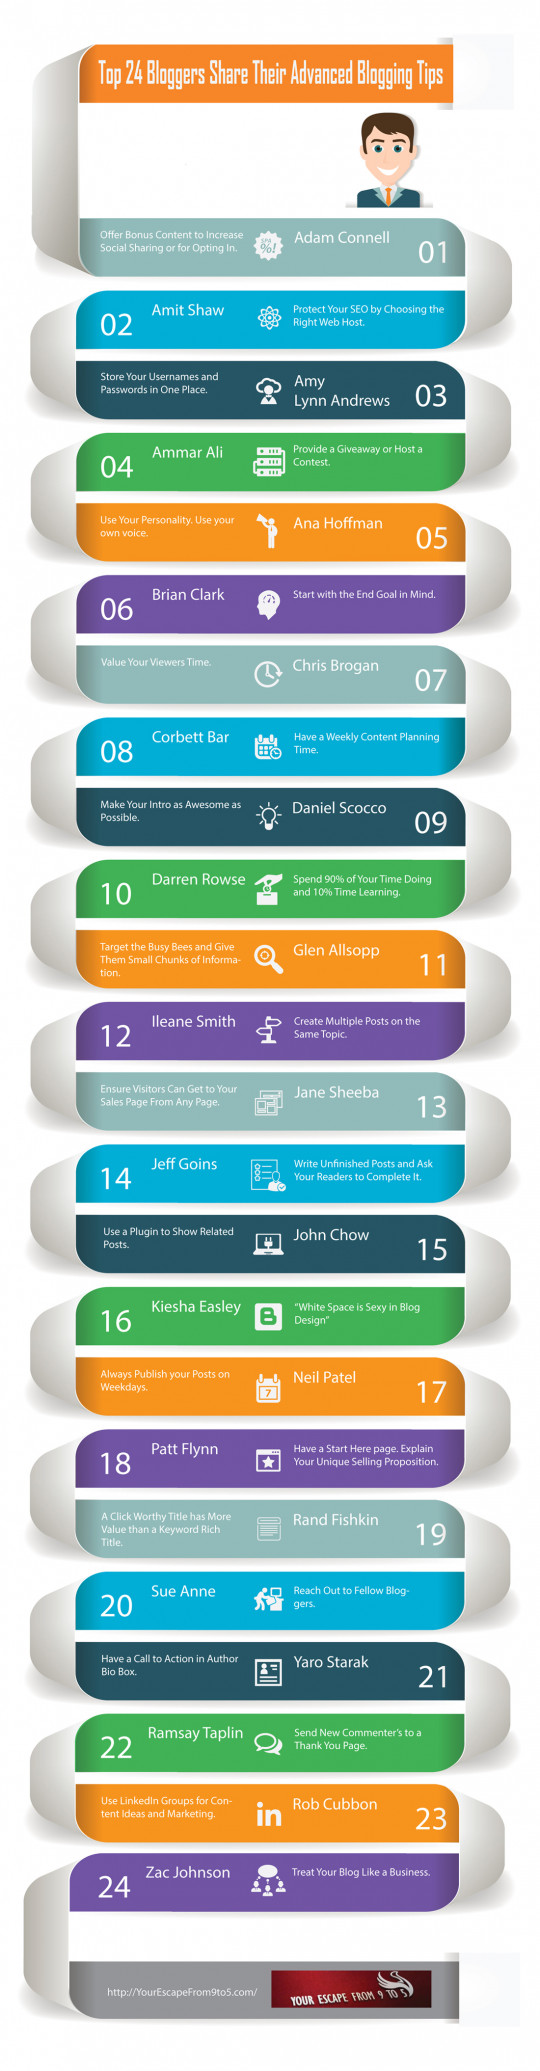 Top 24 Bloggers Share Their Advanced Blogging Tips – INFOGRAPHIC